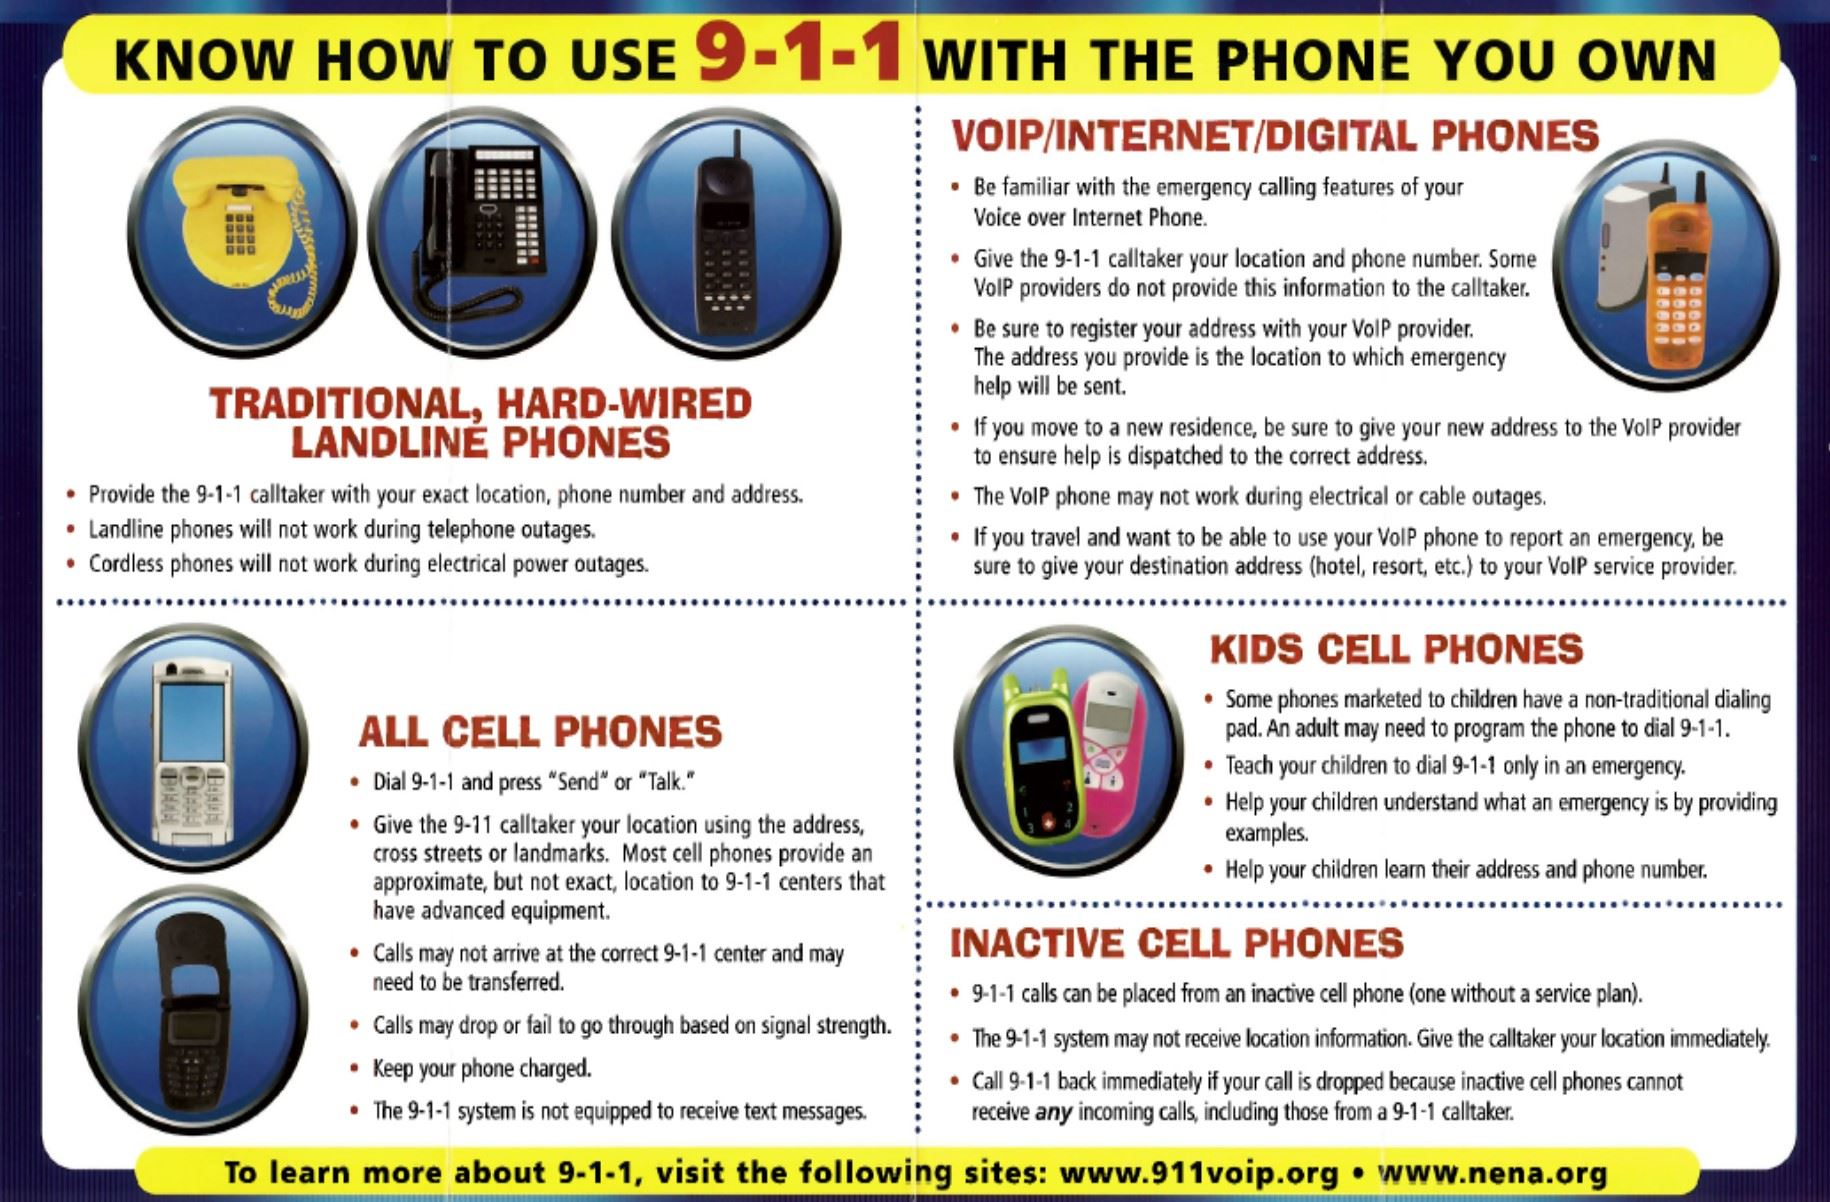 Know How To Use 9-1-1 With The Phone You Own